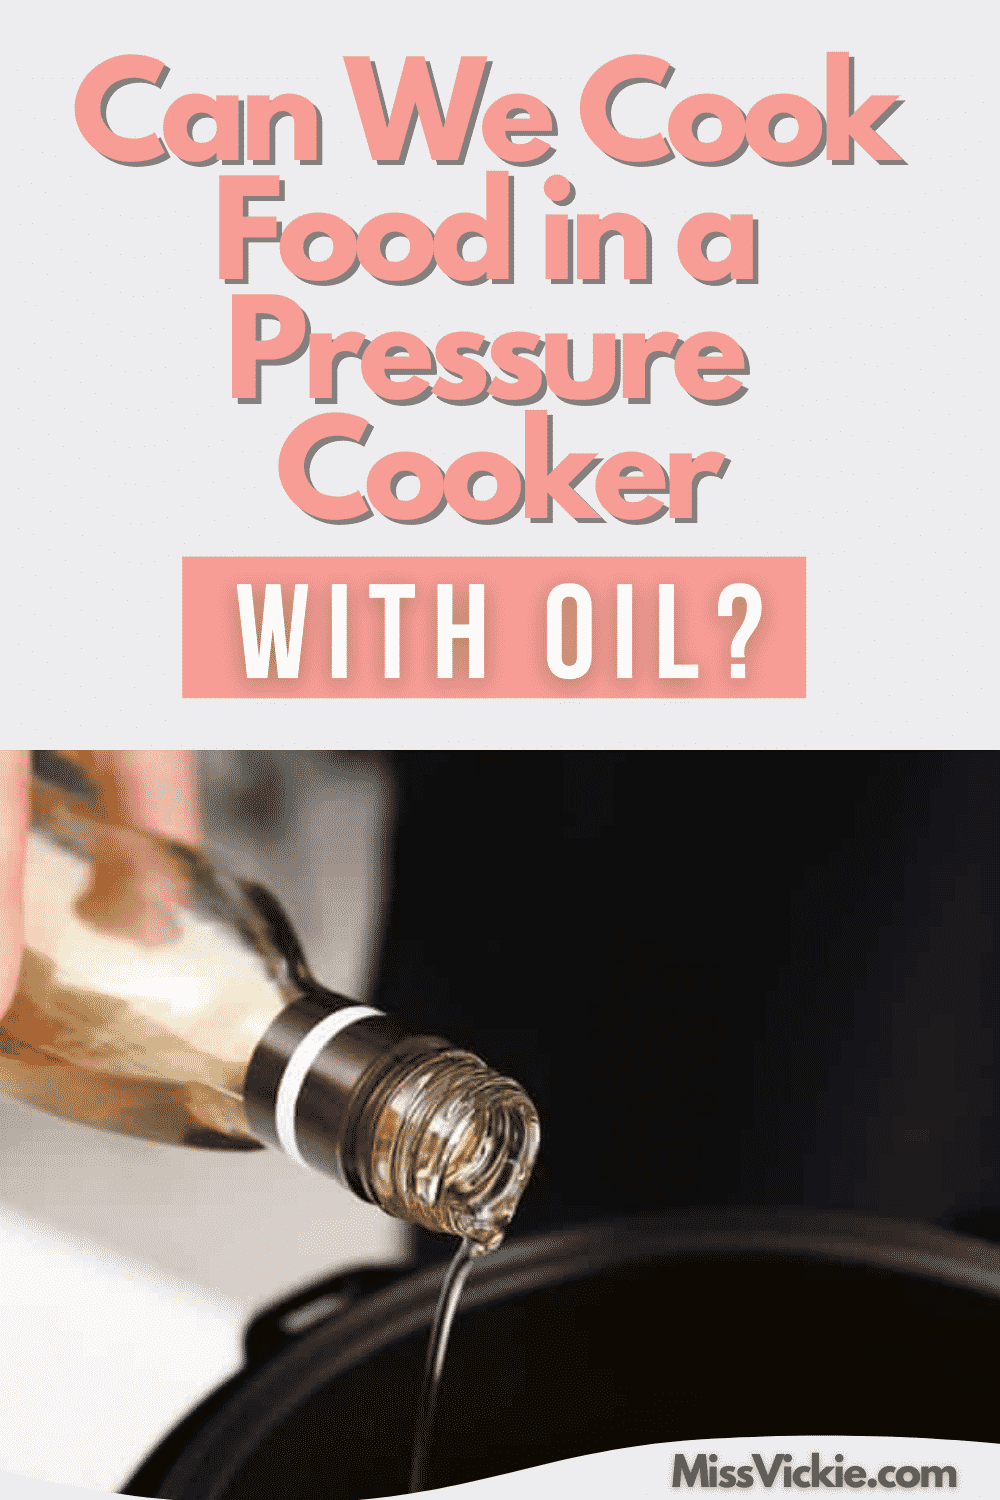 Can We Cook Food In A Pressure Cooker With Oil